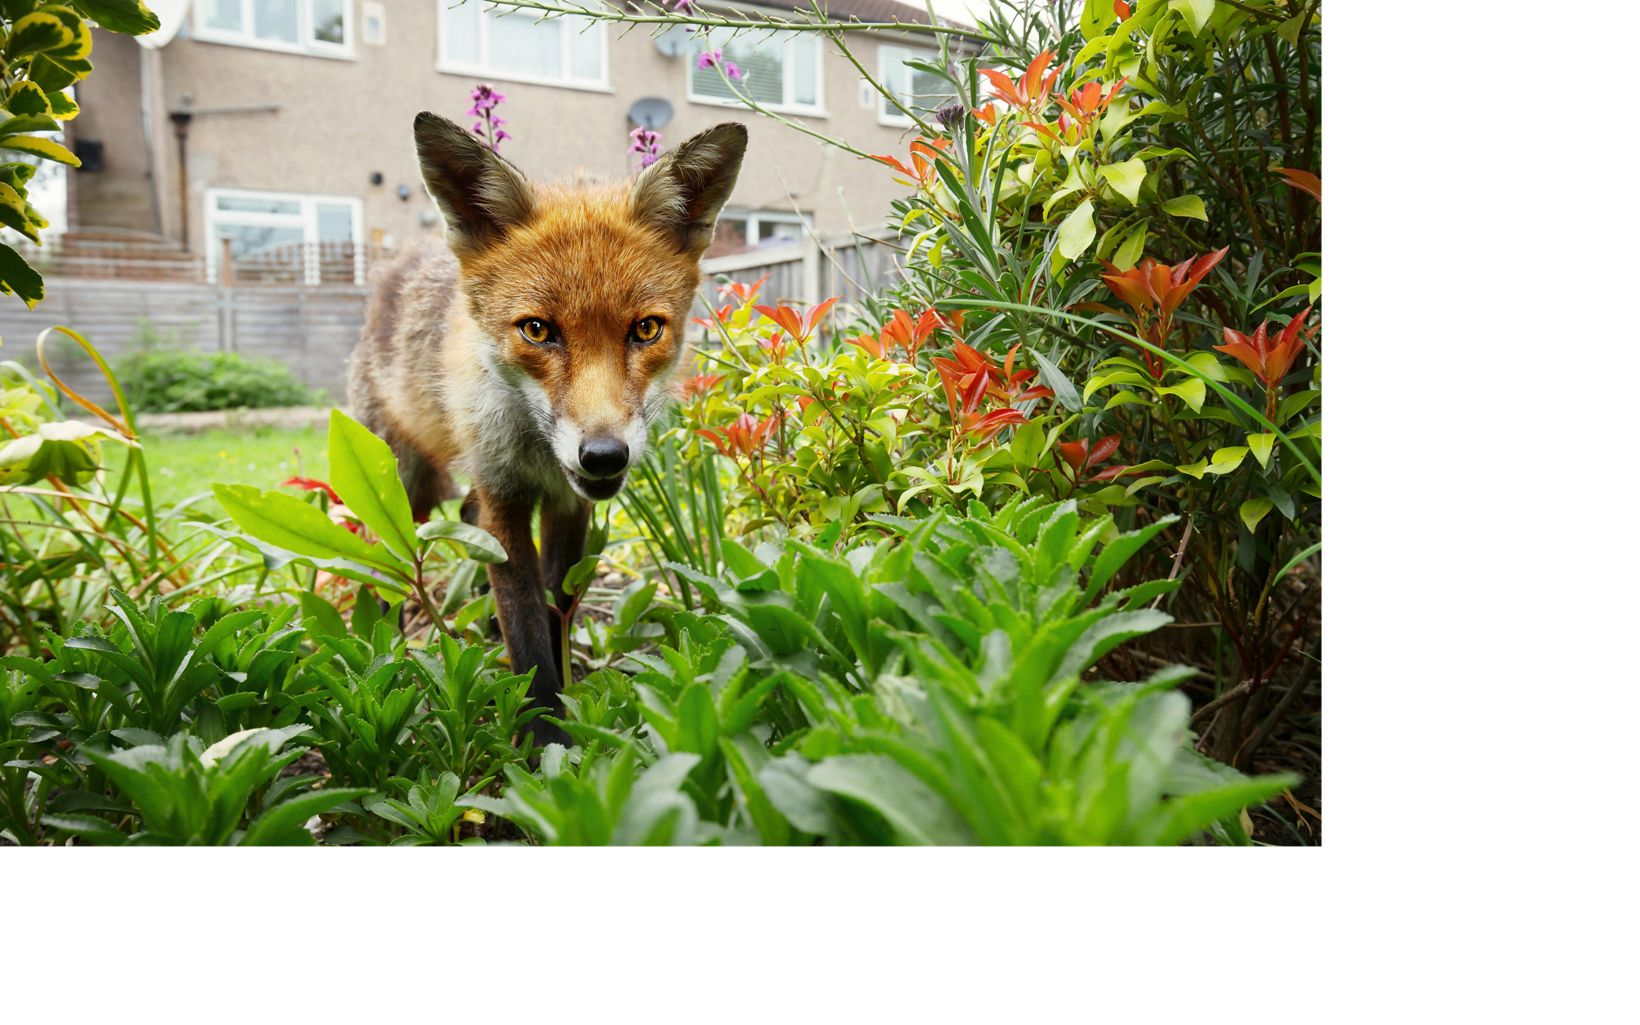 A red fox explores a garden in a suburb of London.